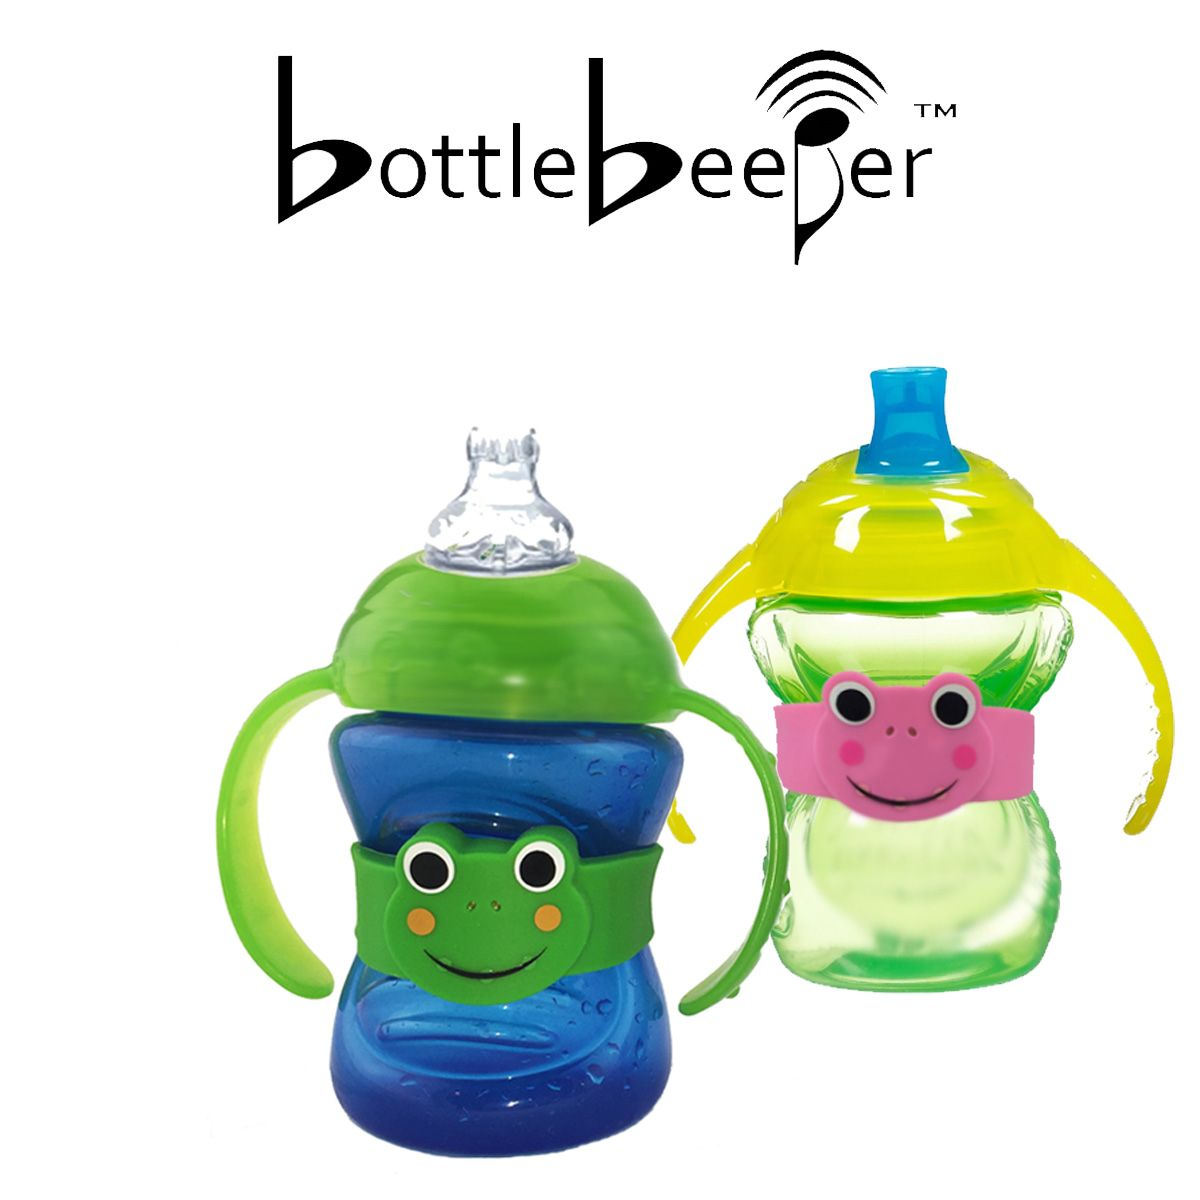 A SIMPLE solution to help find your child's lost baby bottle or sippy cup!